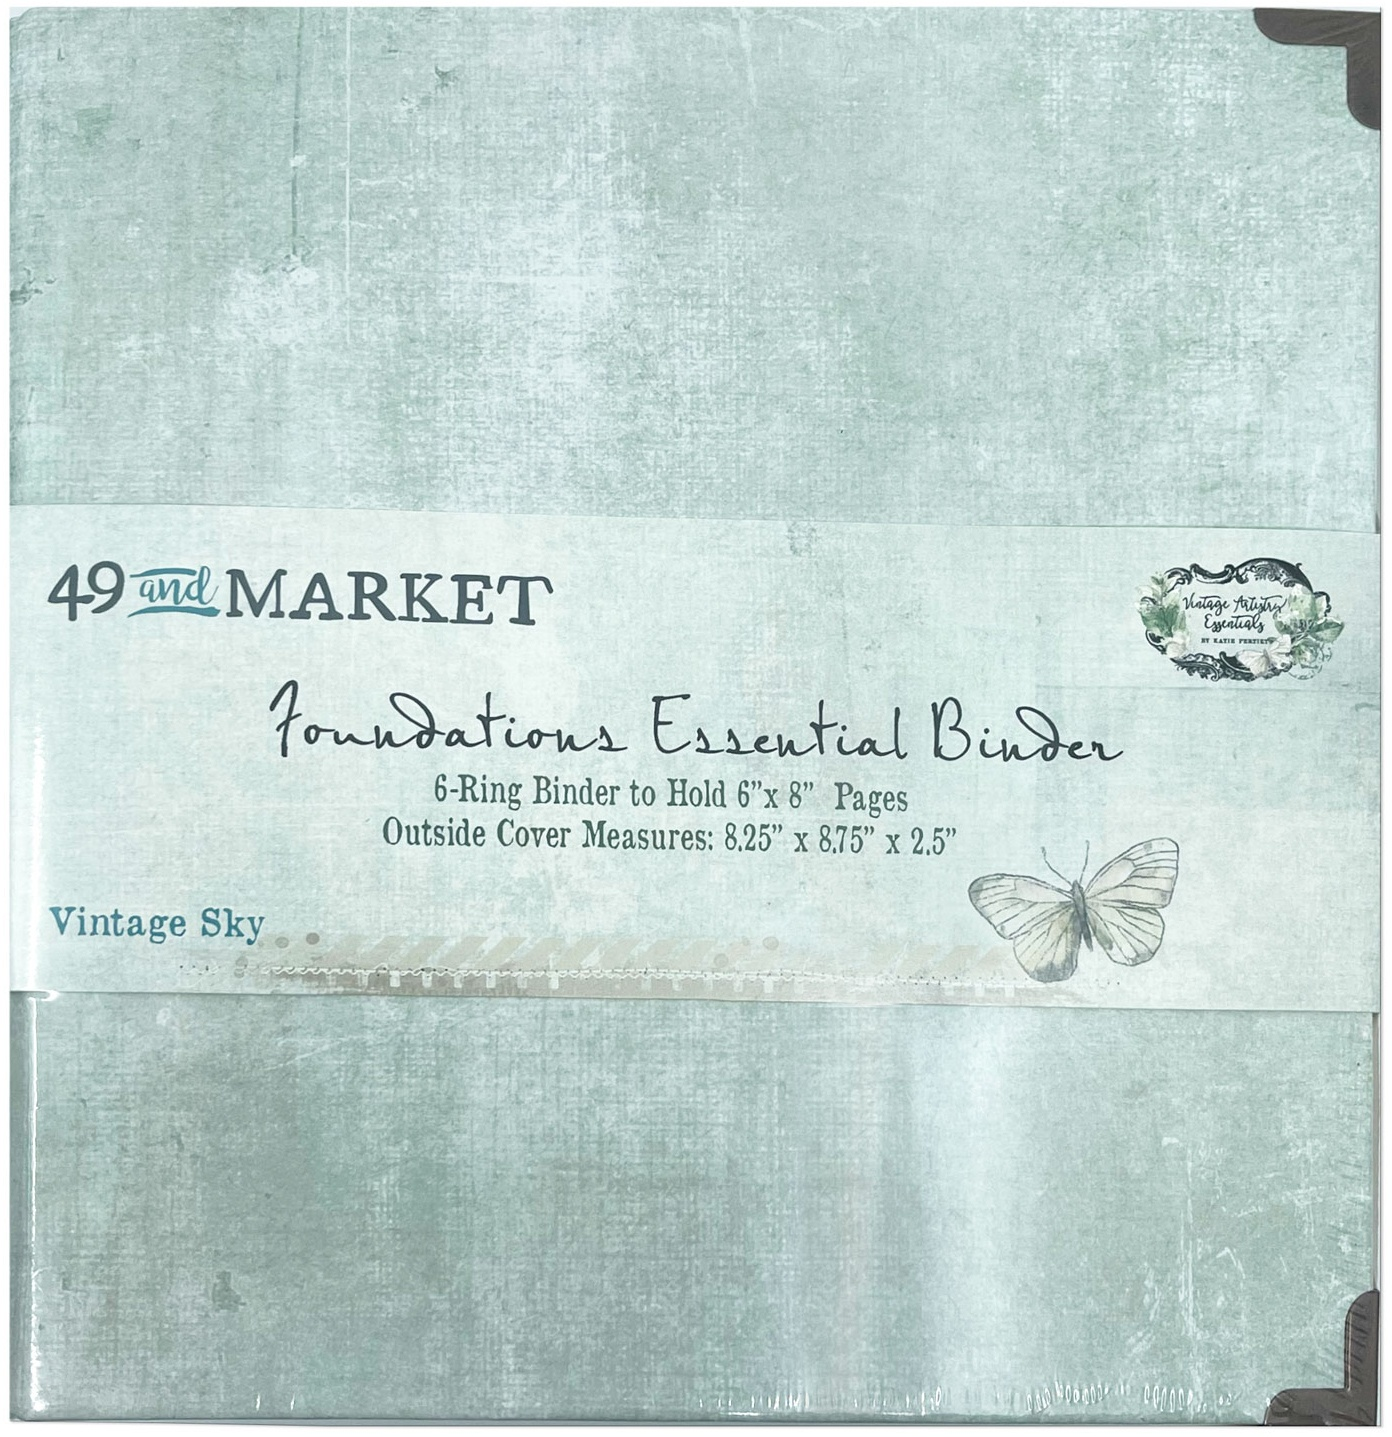 49 And Market Foundations Essential Binder-Vintage Sky